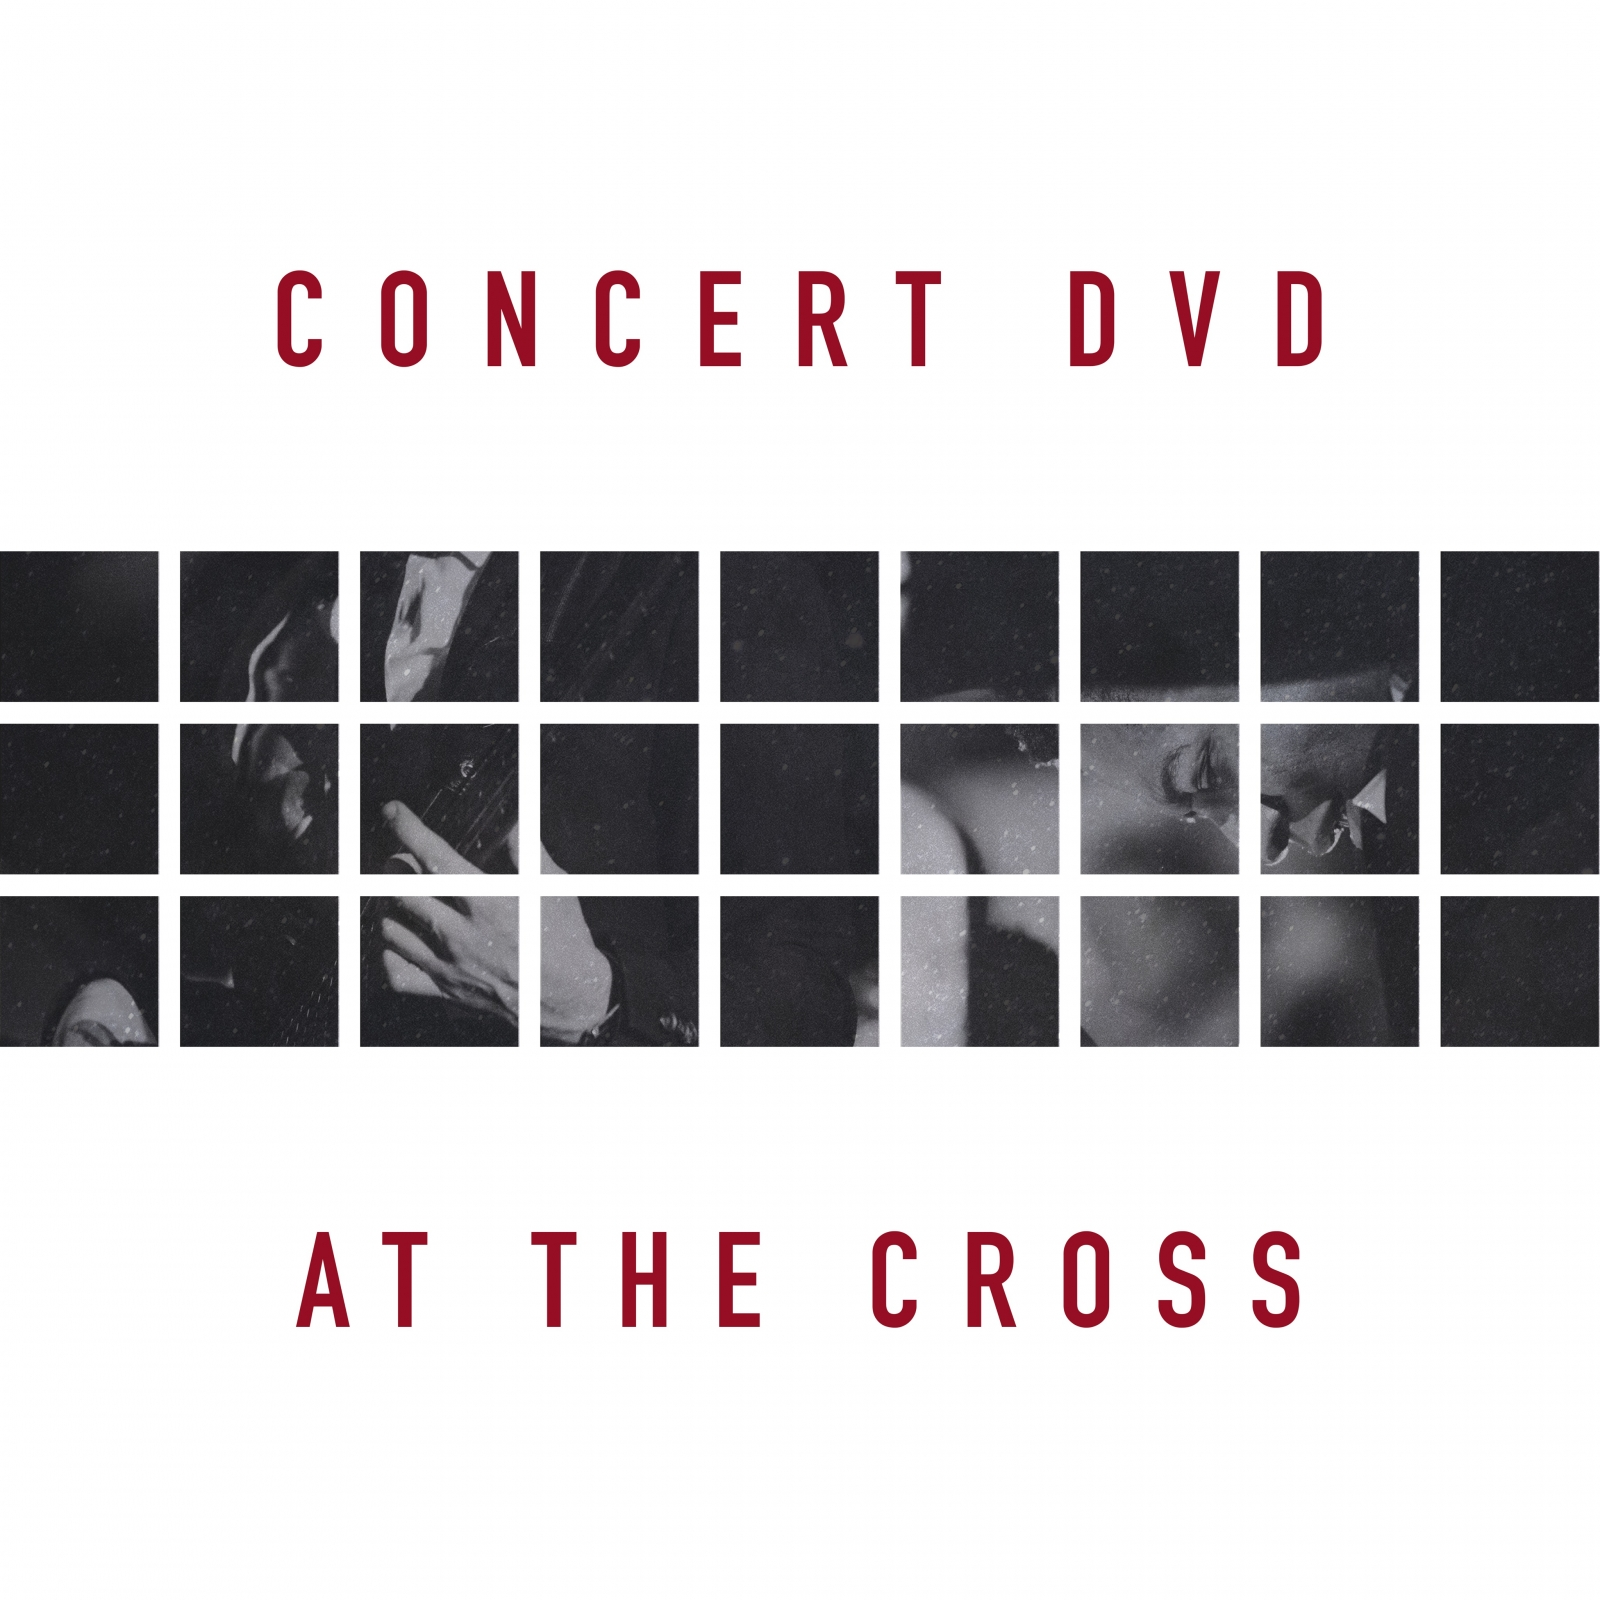 DVD - At the Cross